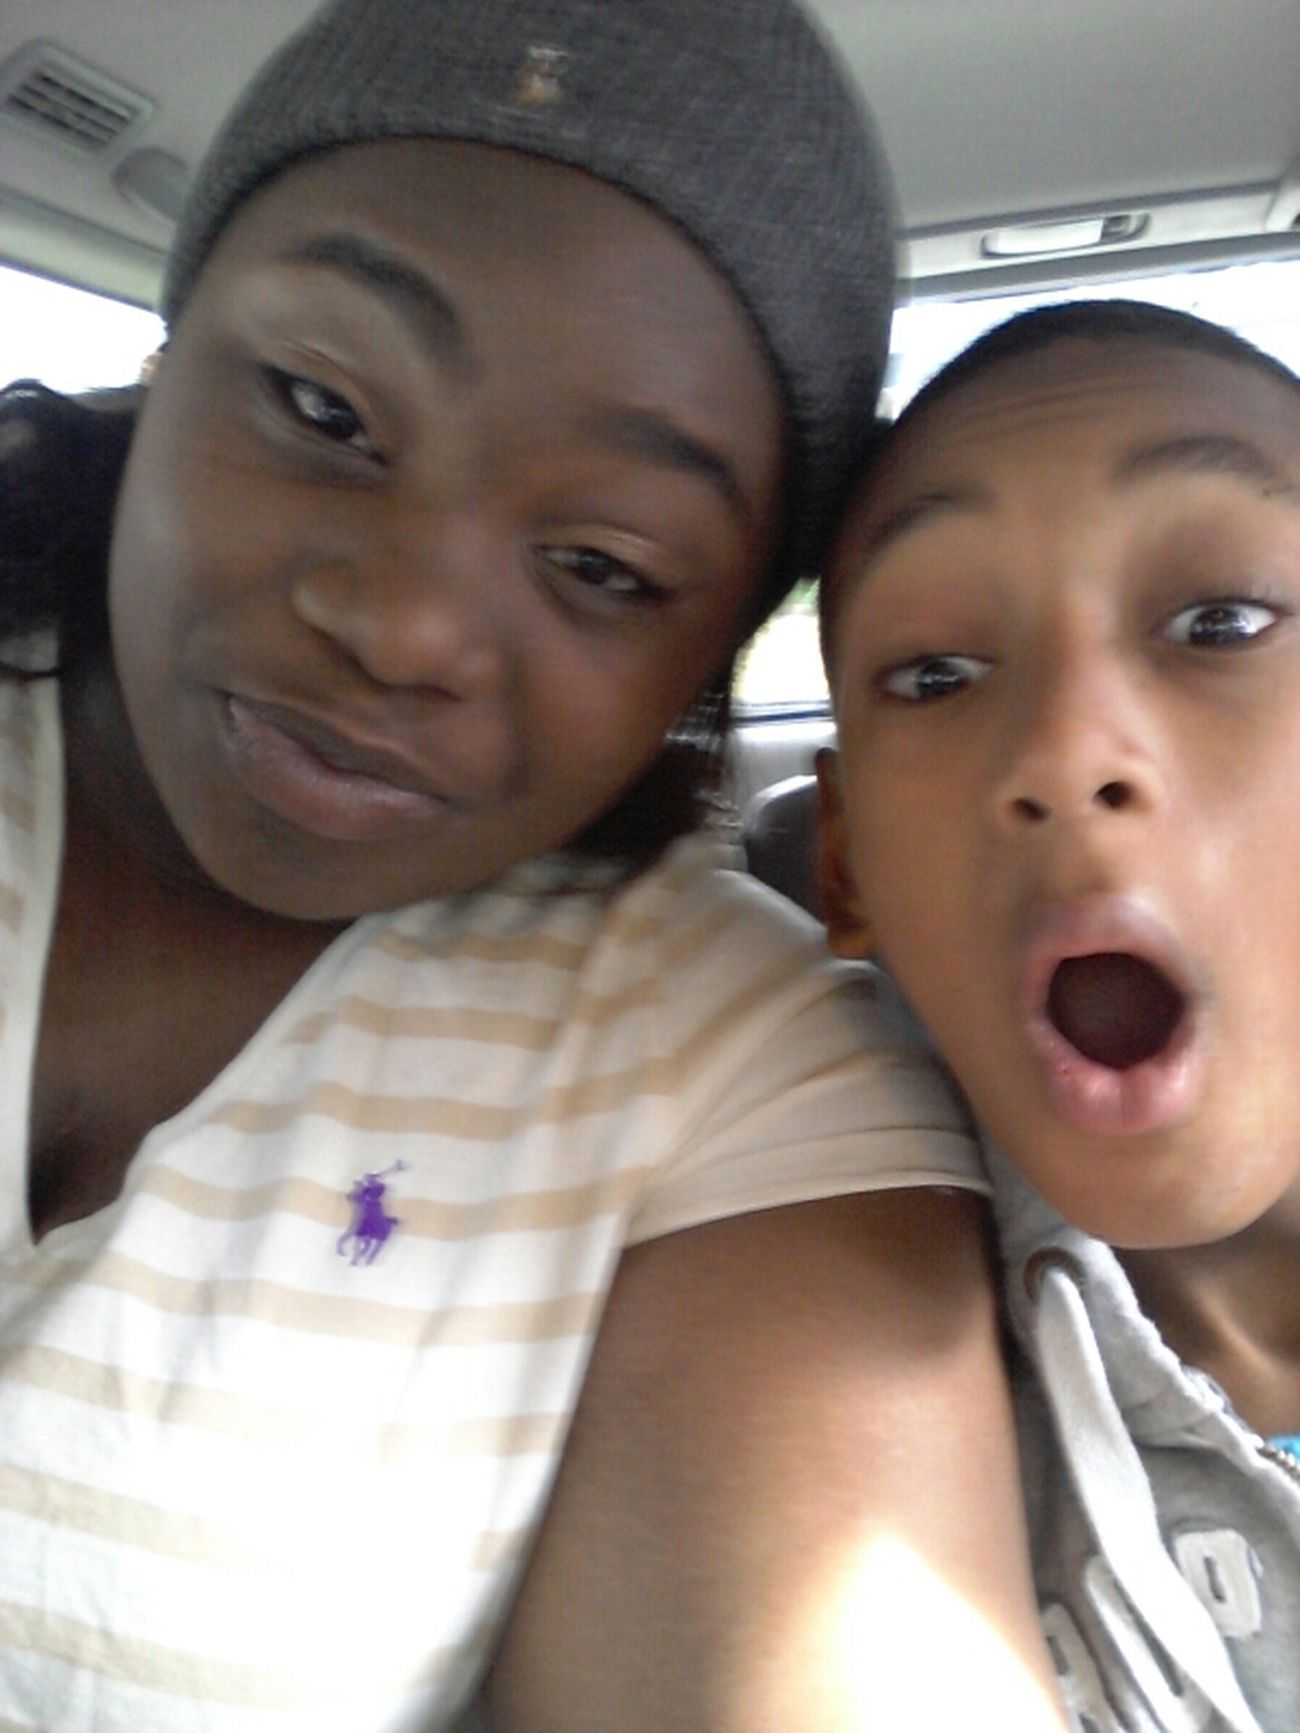 Me And My Lil Brother